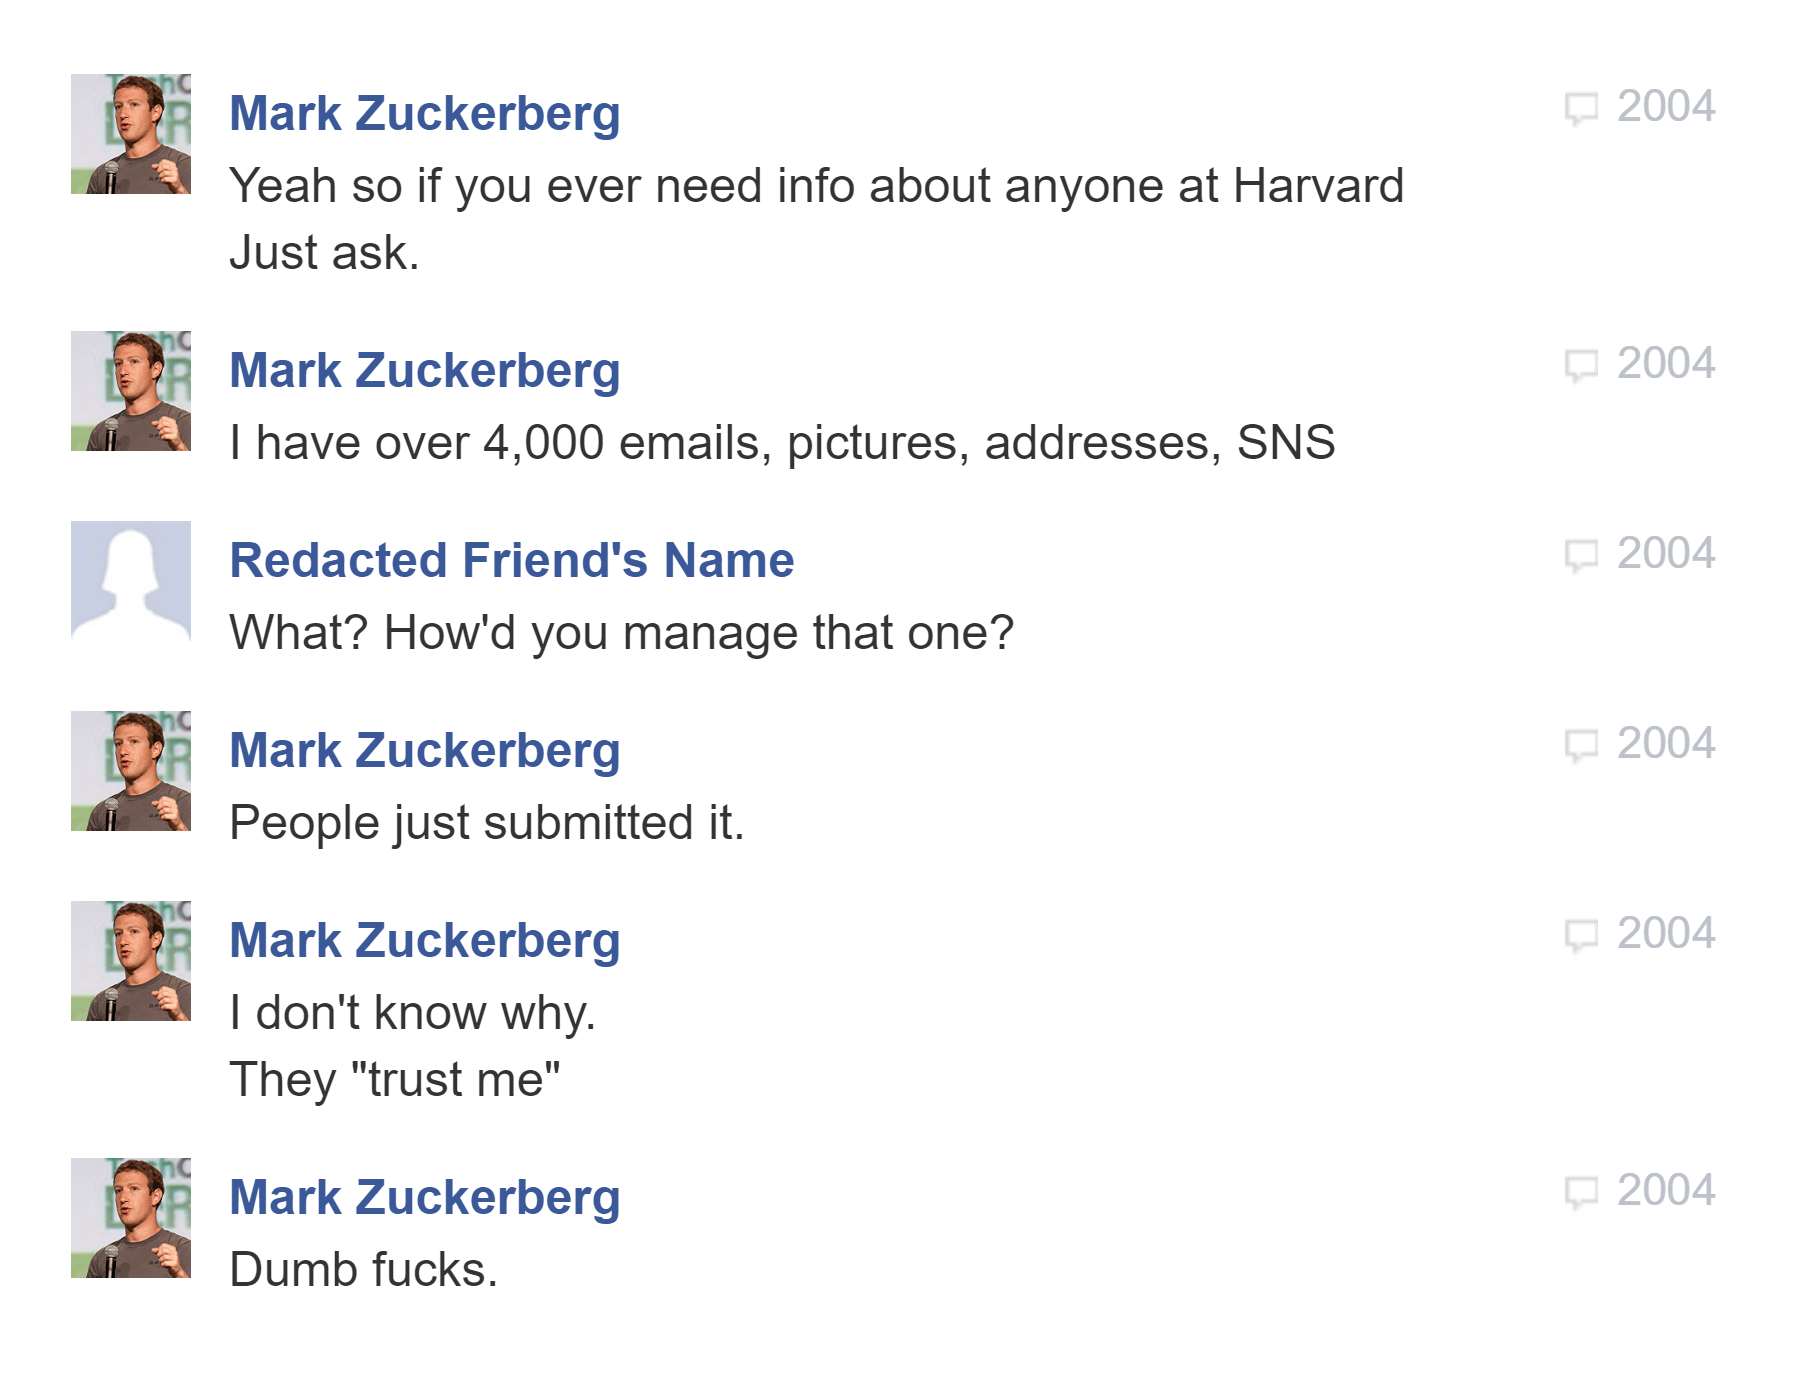 Mark Zuckerberg messages 2004 dumb fucks